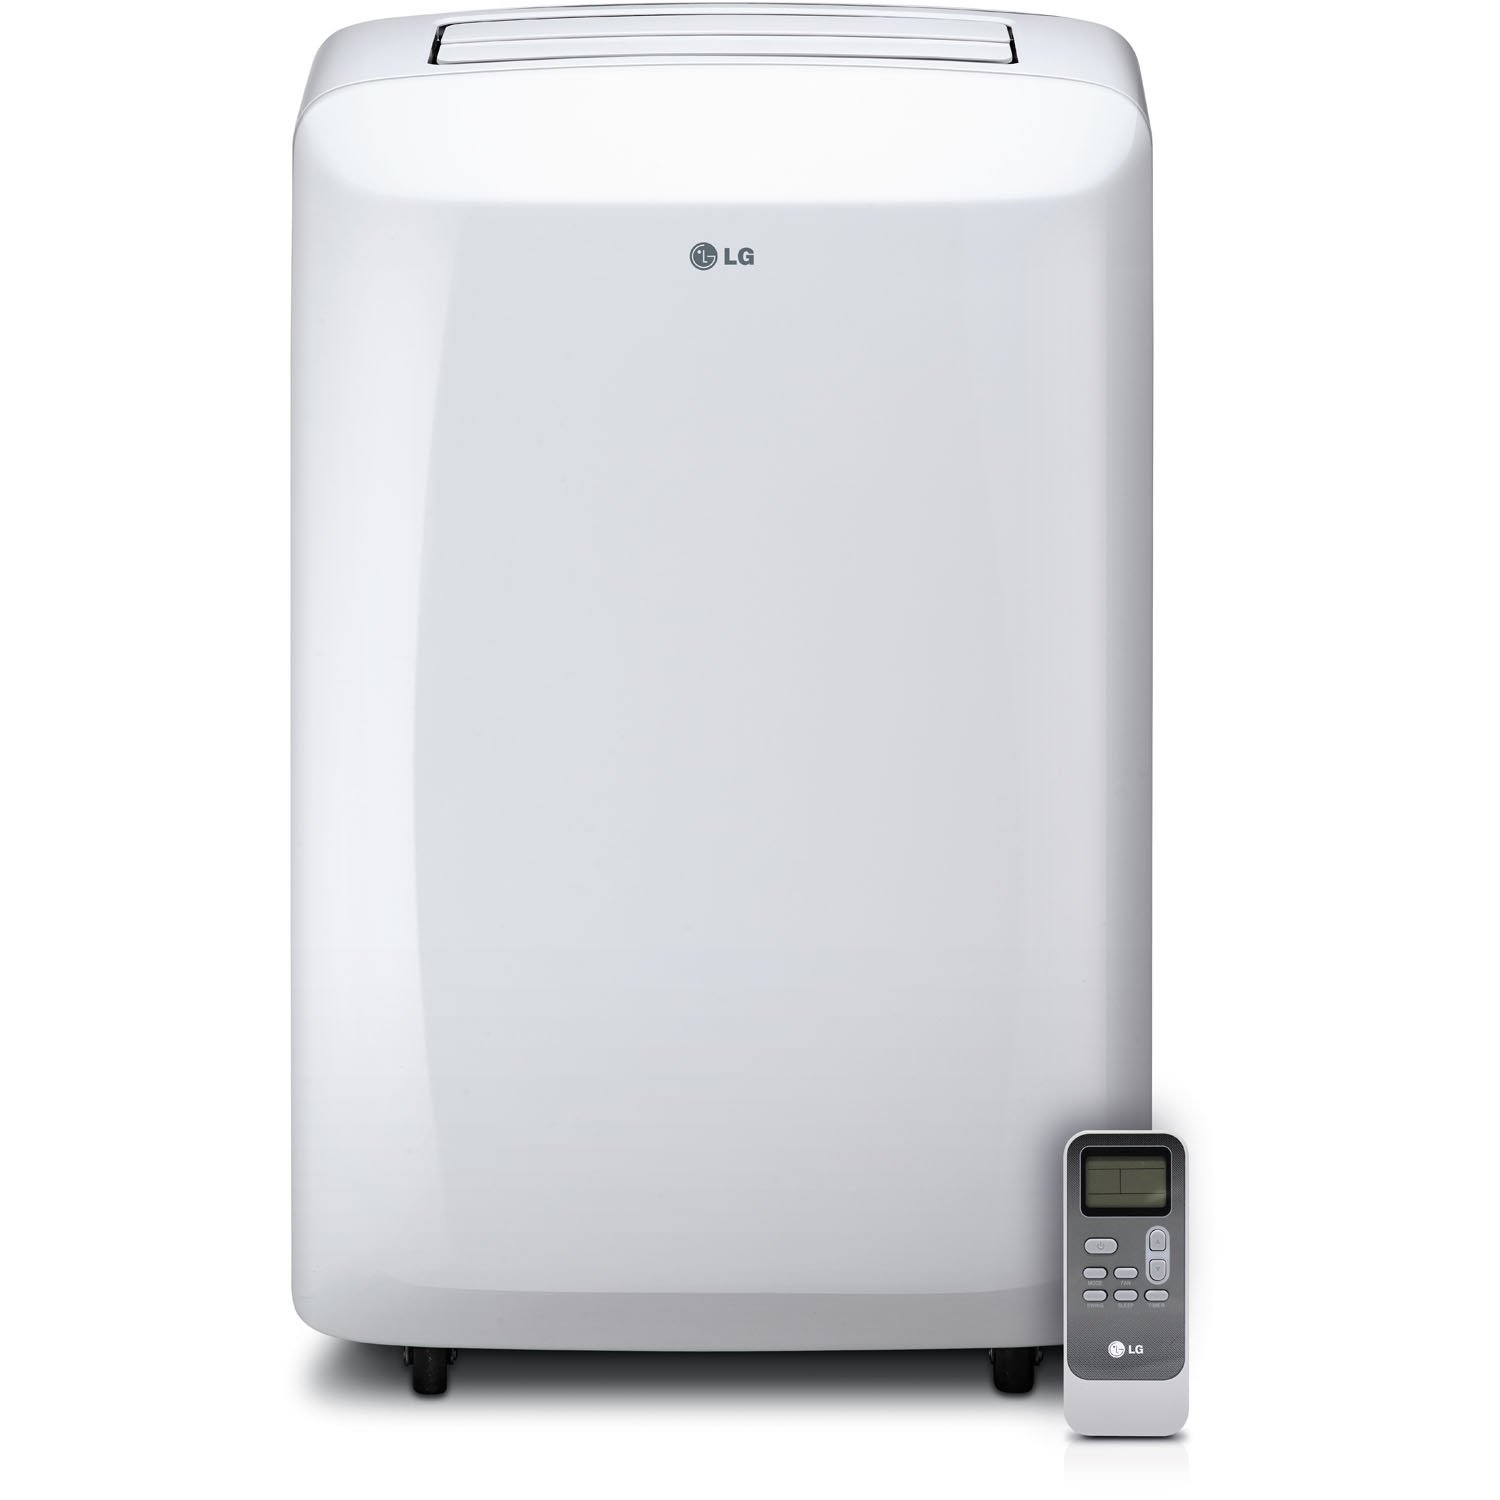 Lg portable air conditioner instructions